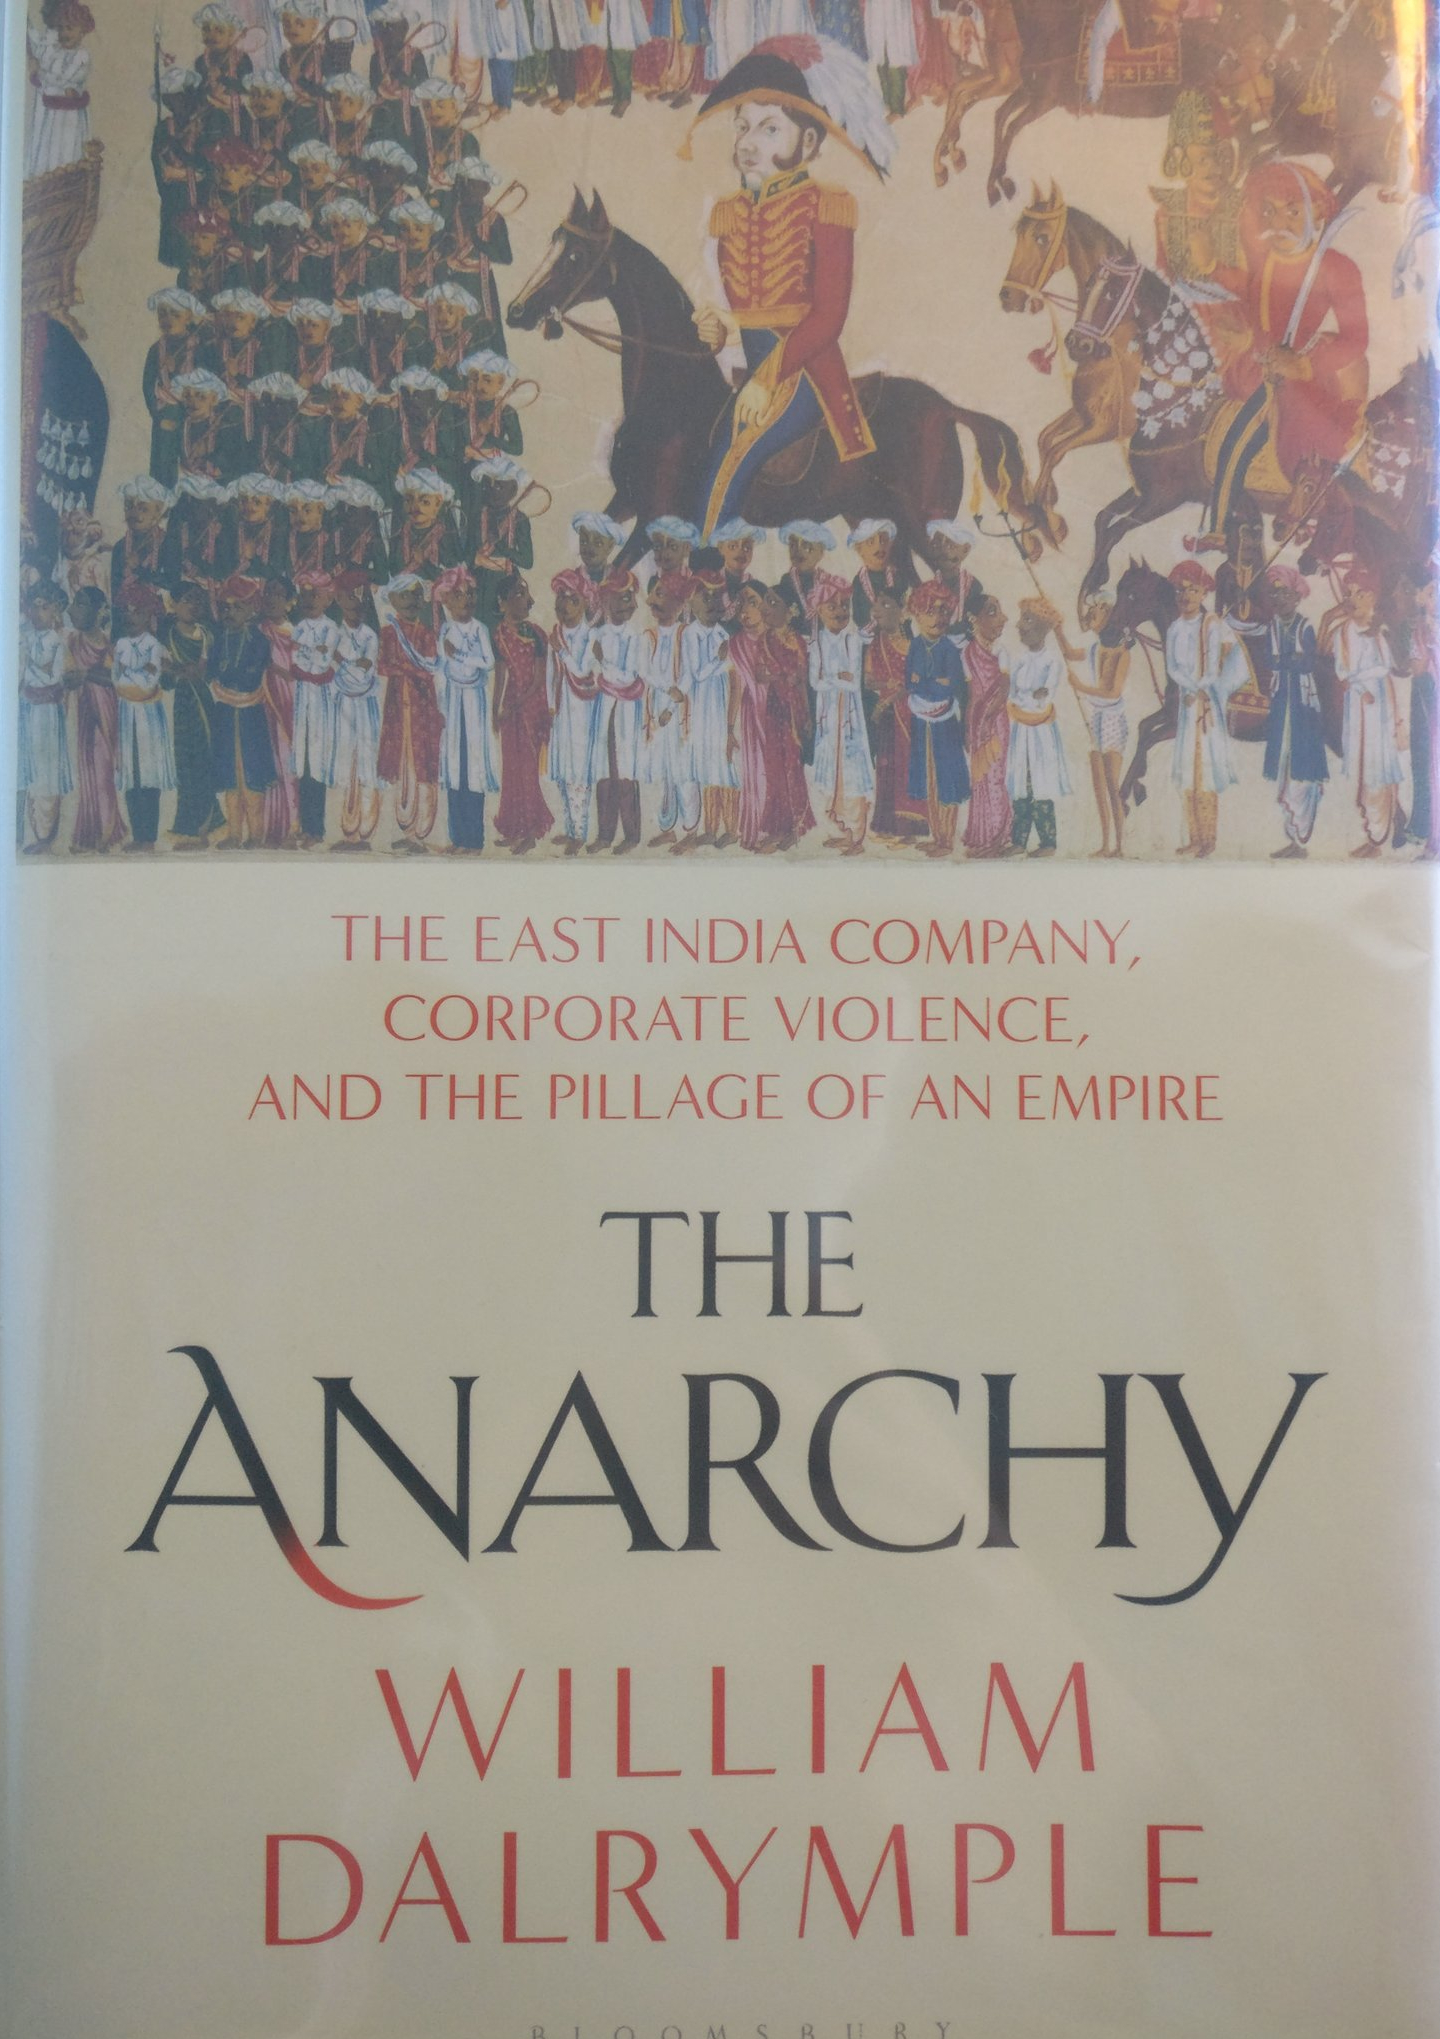 The Anarchy front cover